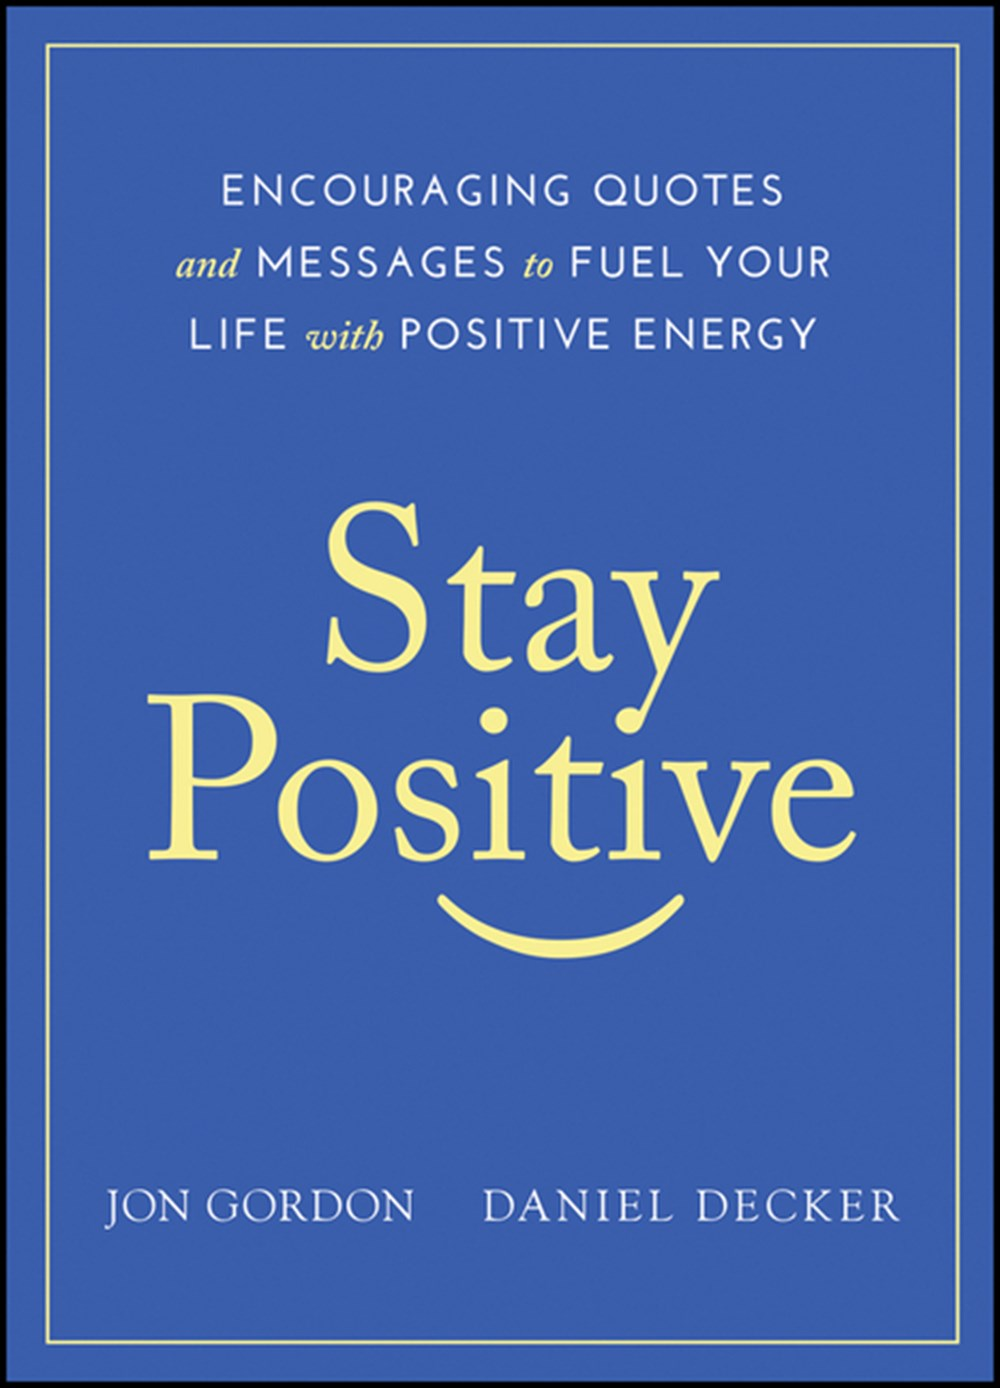 Stay Positive Encouraging Quotes and Messages to Fuel Your Life with Positive Energy